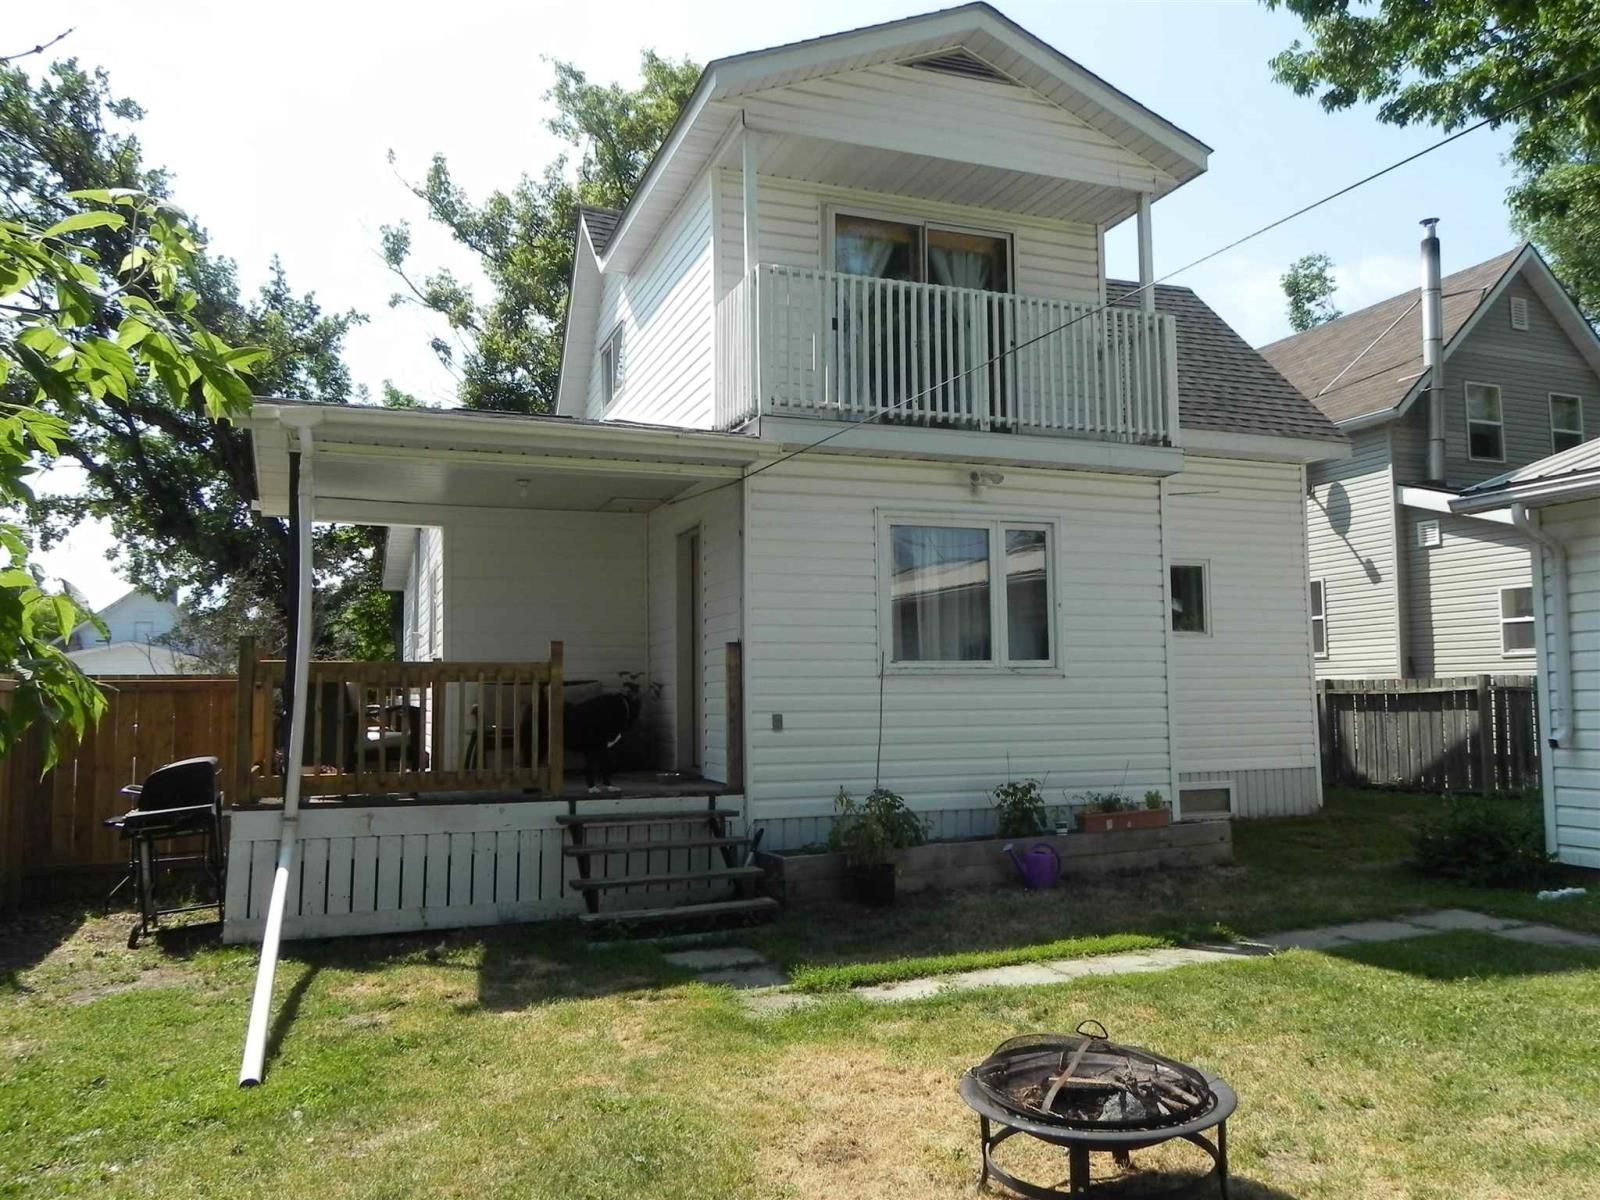 Main Photo: 210 Fifth ST in Rainy River: House for sale : MLS®# TB211885